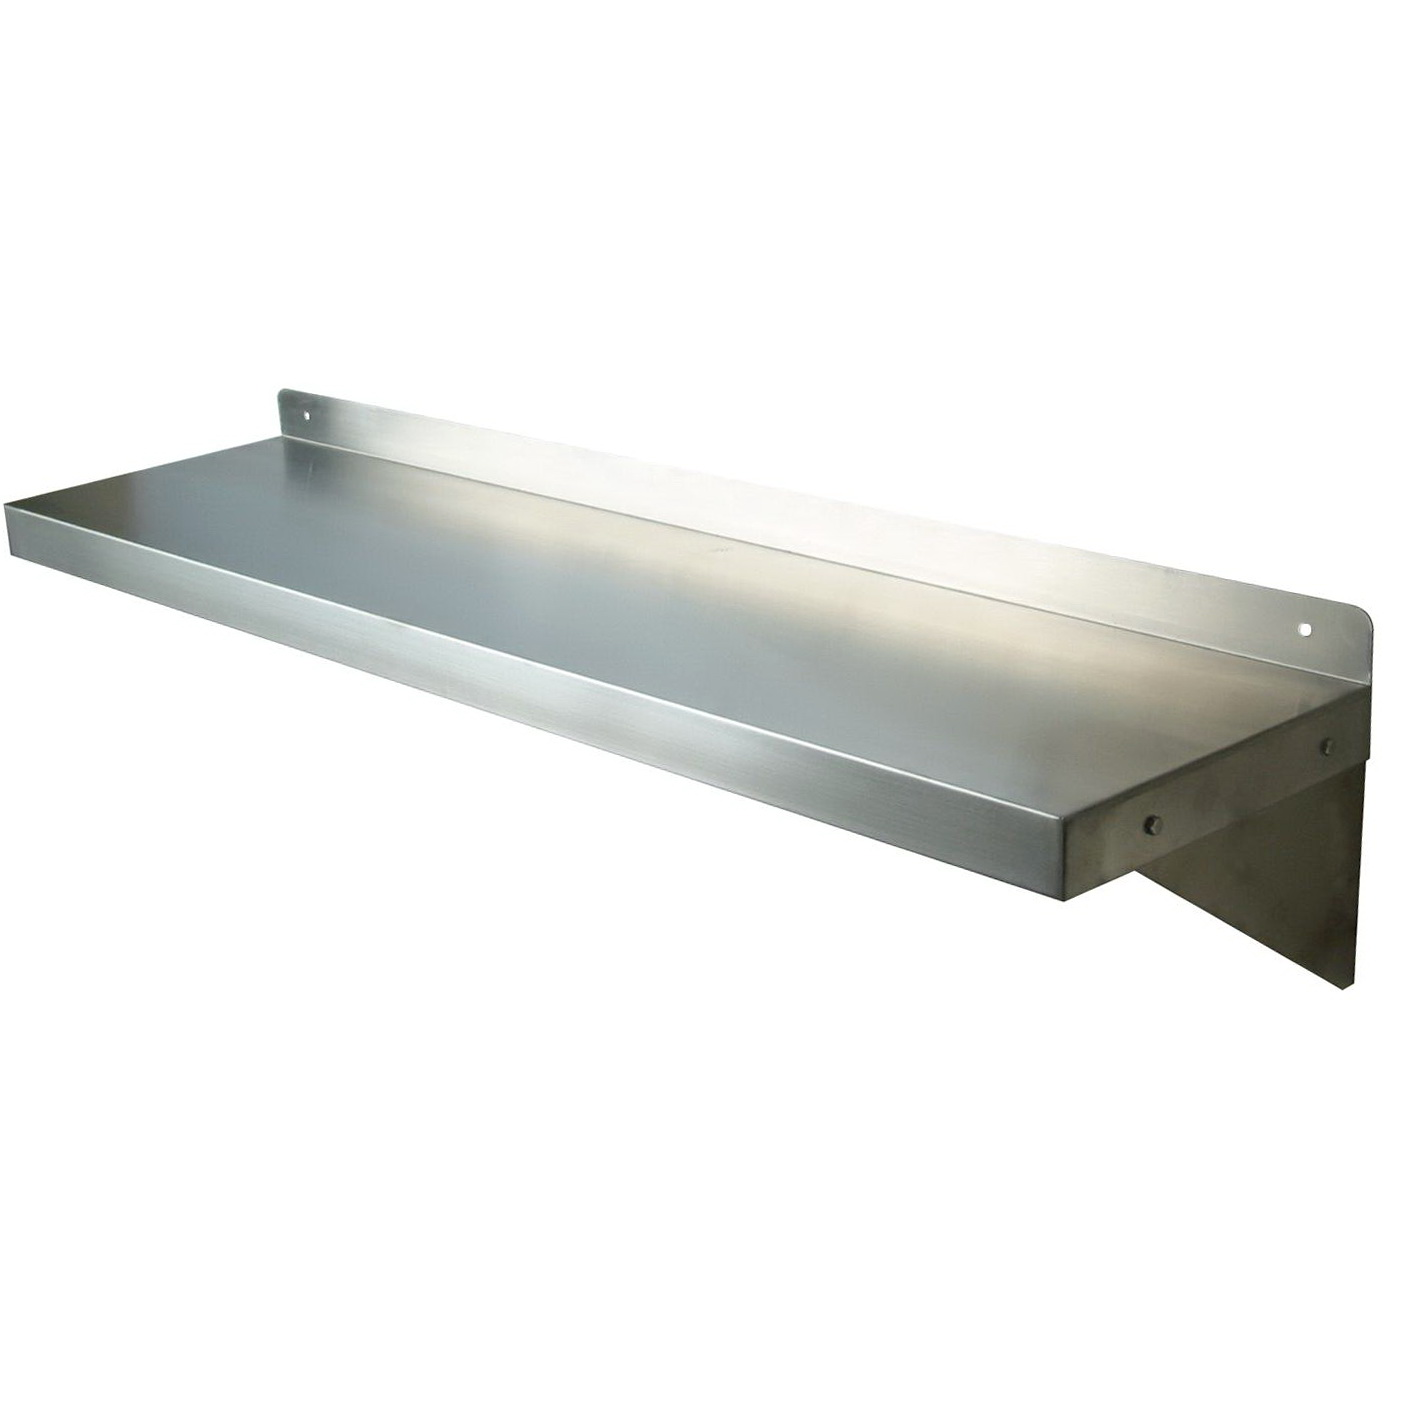 Stainless Steel Wall Shelf Kitchen